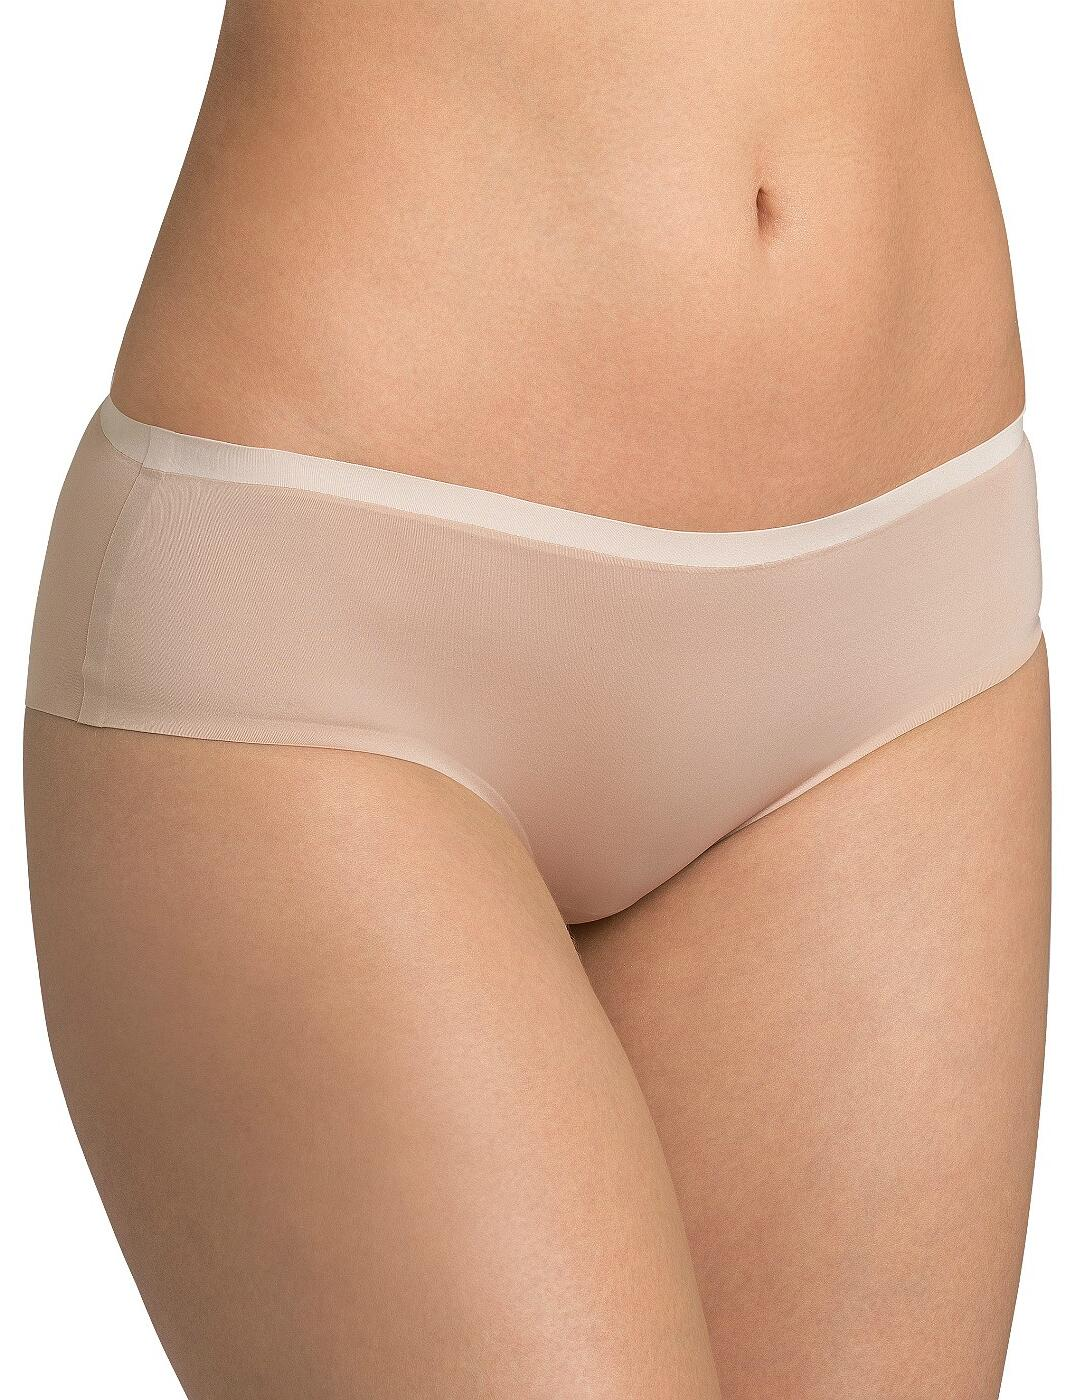 10163104 Sloggi Wow Breeze Hipster Brief - 10163104 New Beige